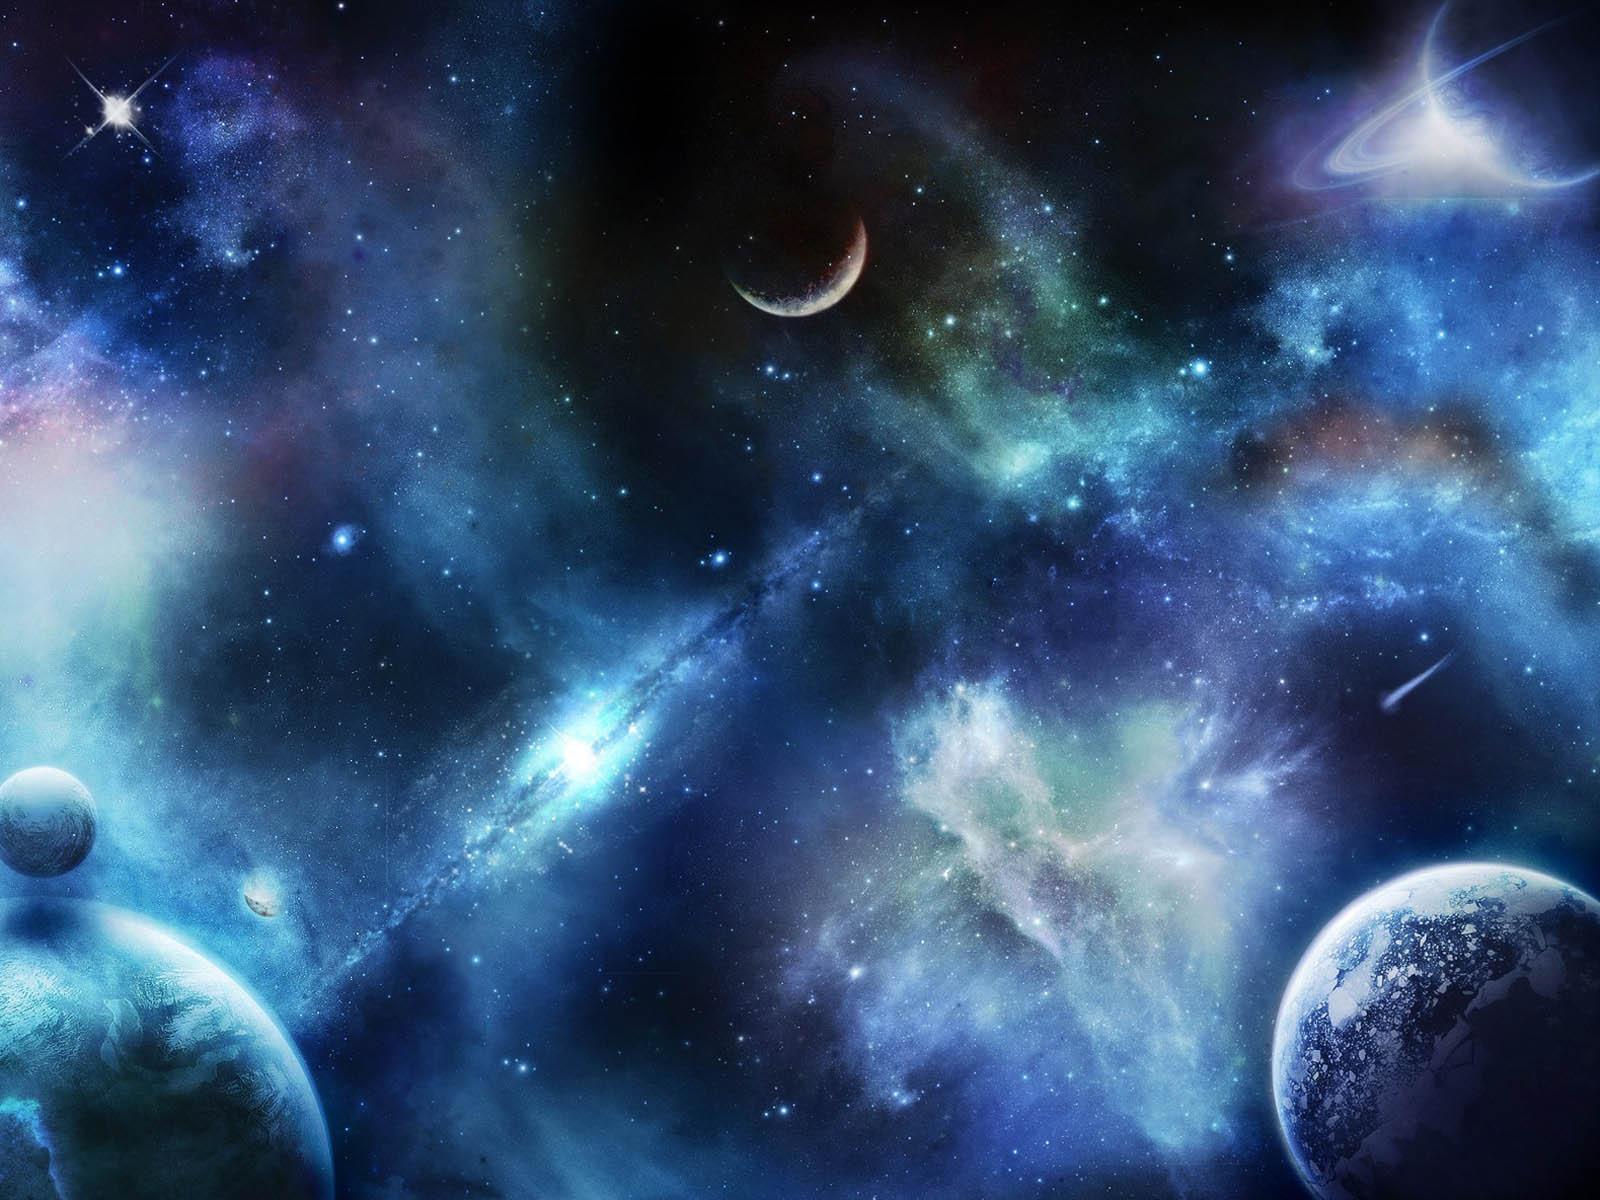 Outer Space Computer Backgrounds | Download HD Wallpapers